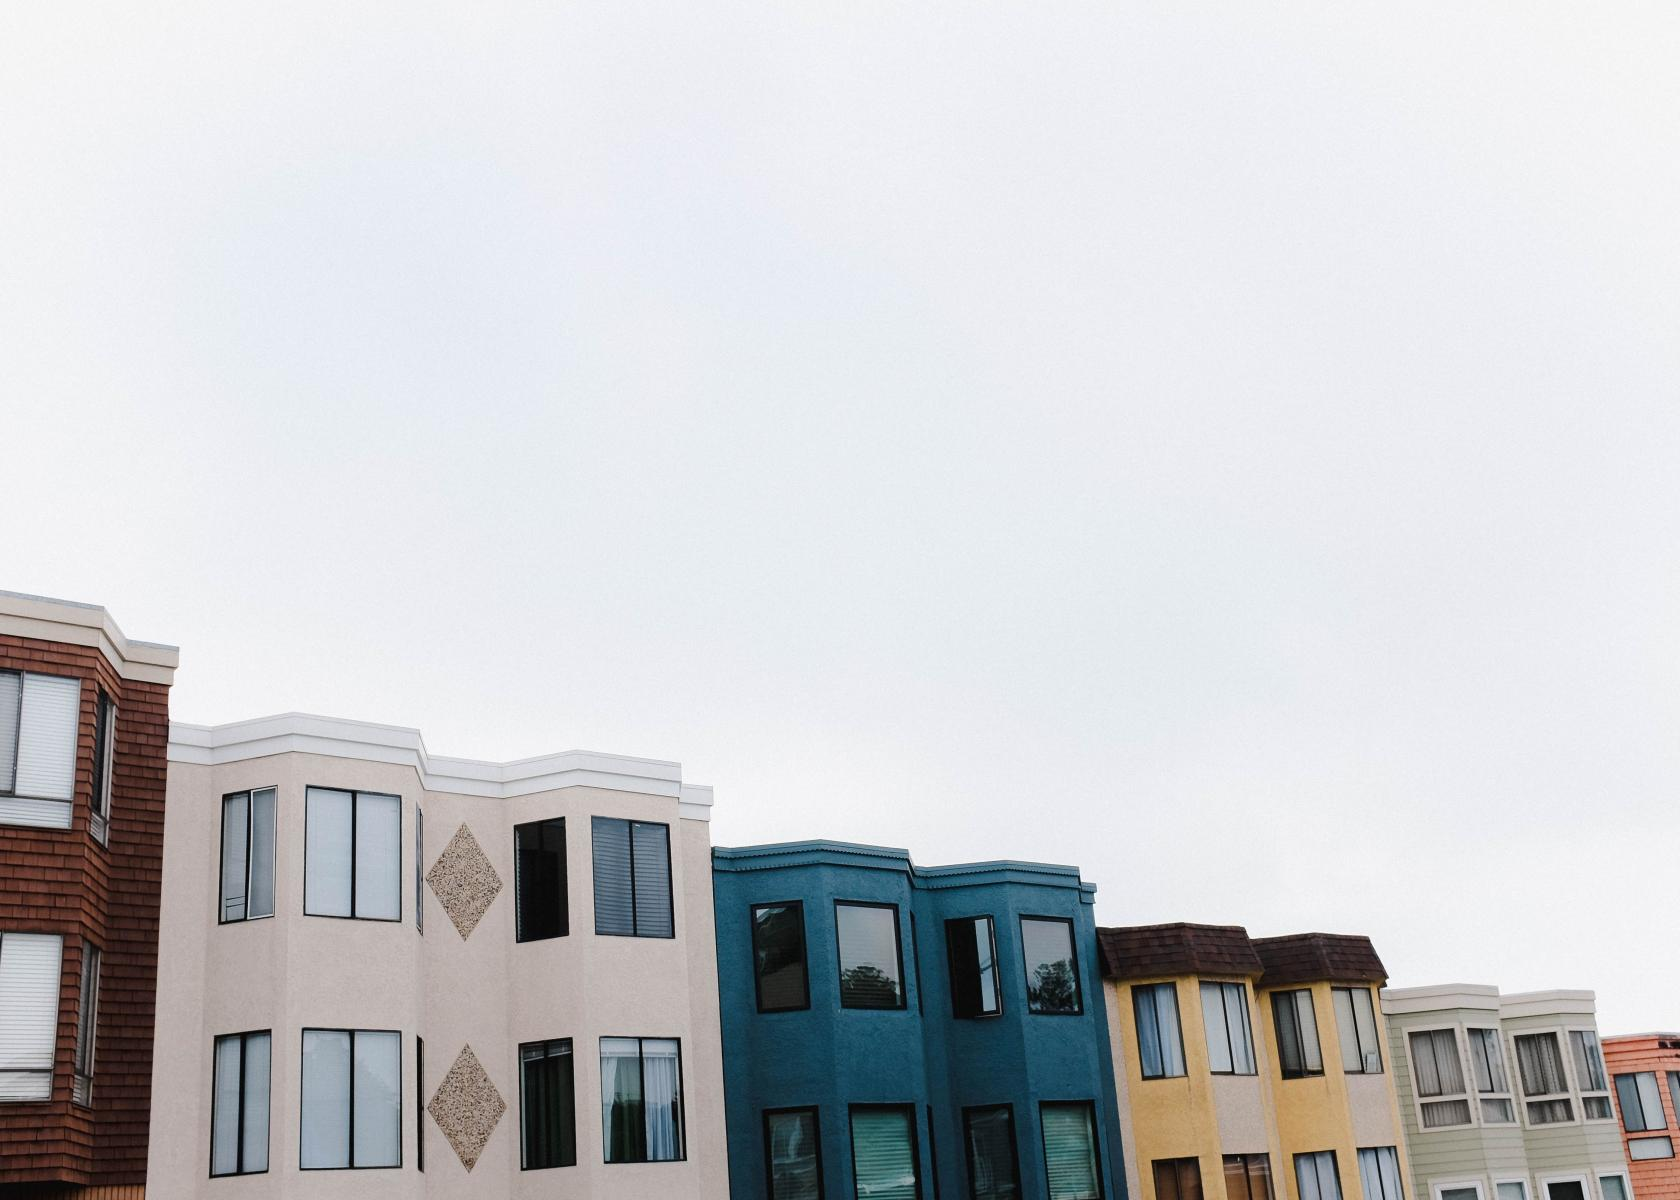 Different Colored Houses Lined Up